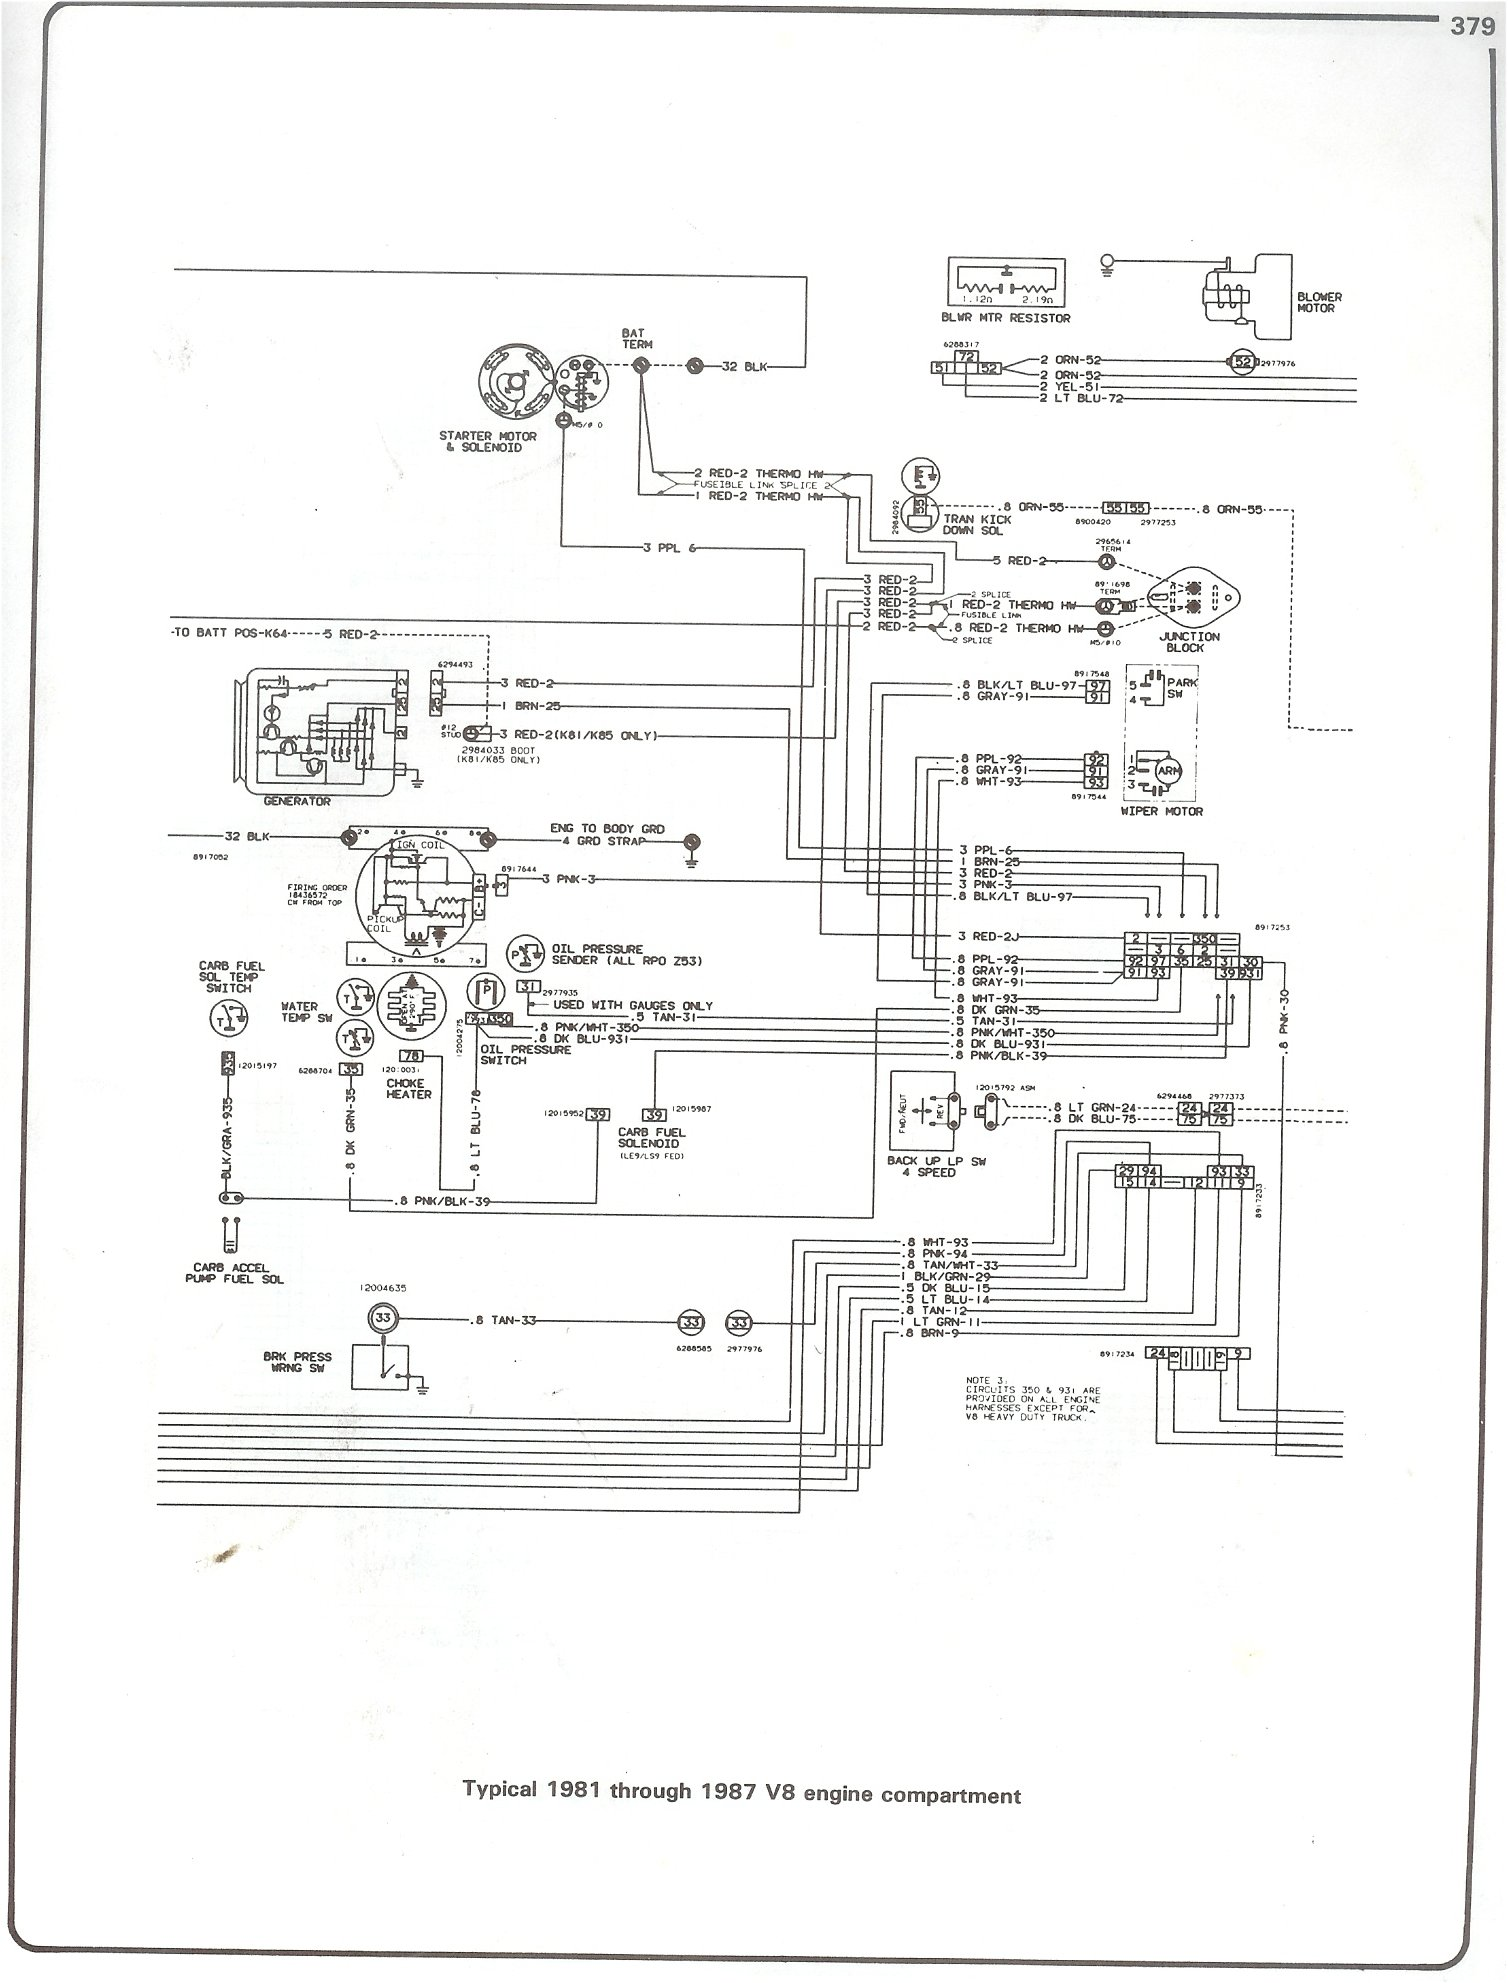 81 87_V8_engine complete 73 87 wiring diagrams  at honlapkeszites.co